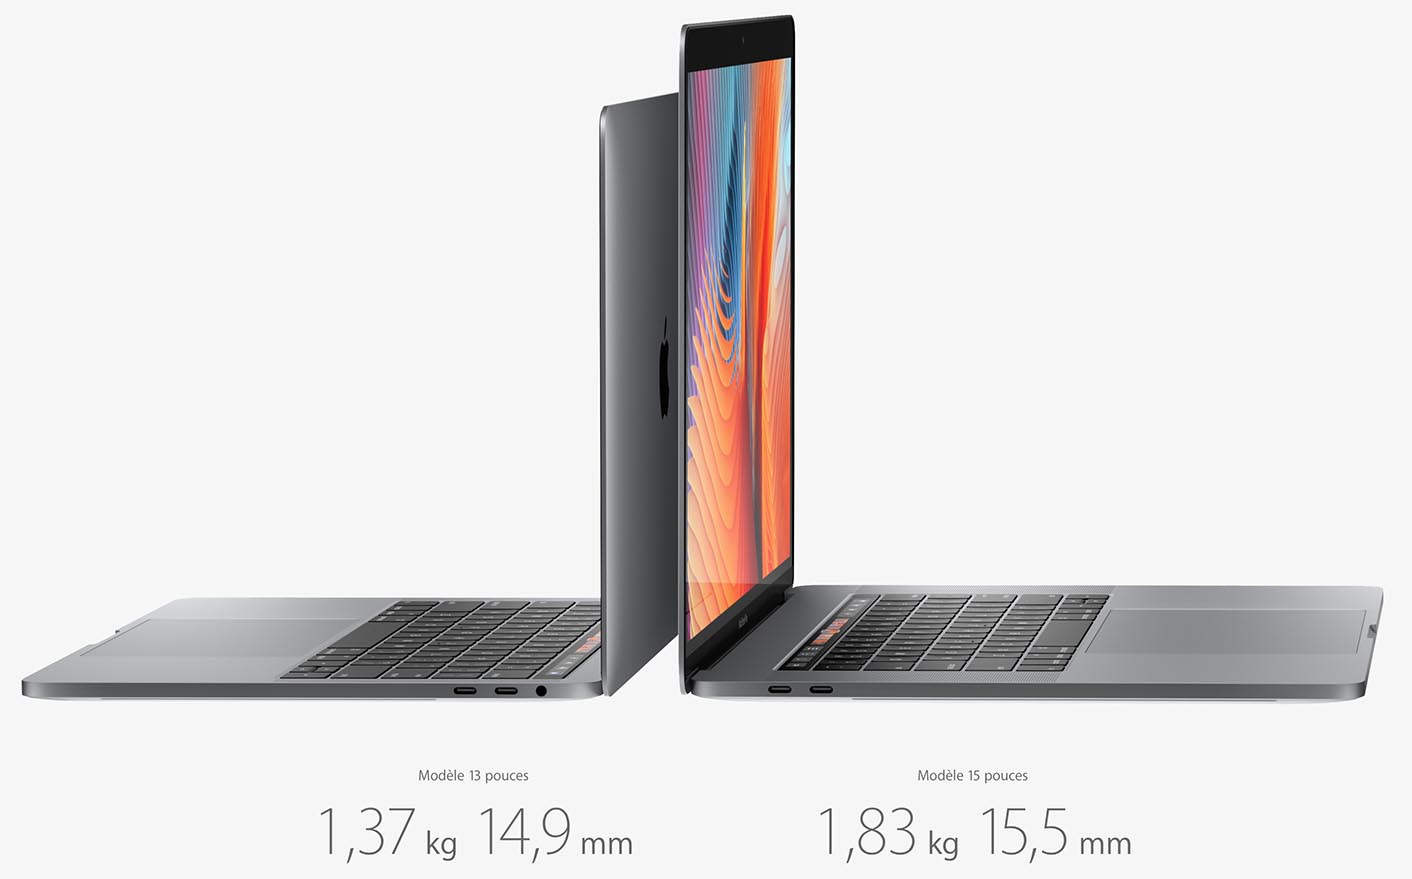 MacBook Pro 2016 design